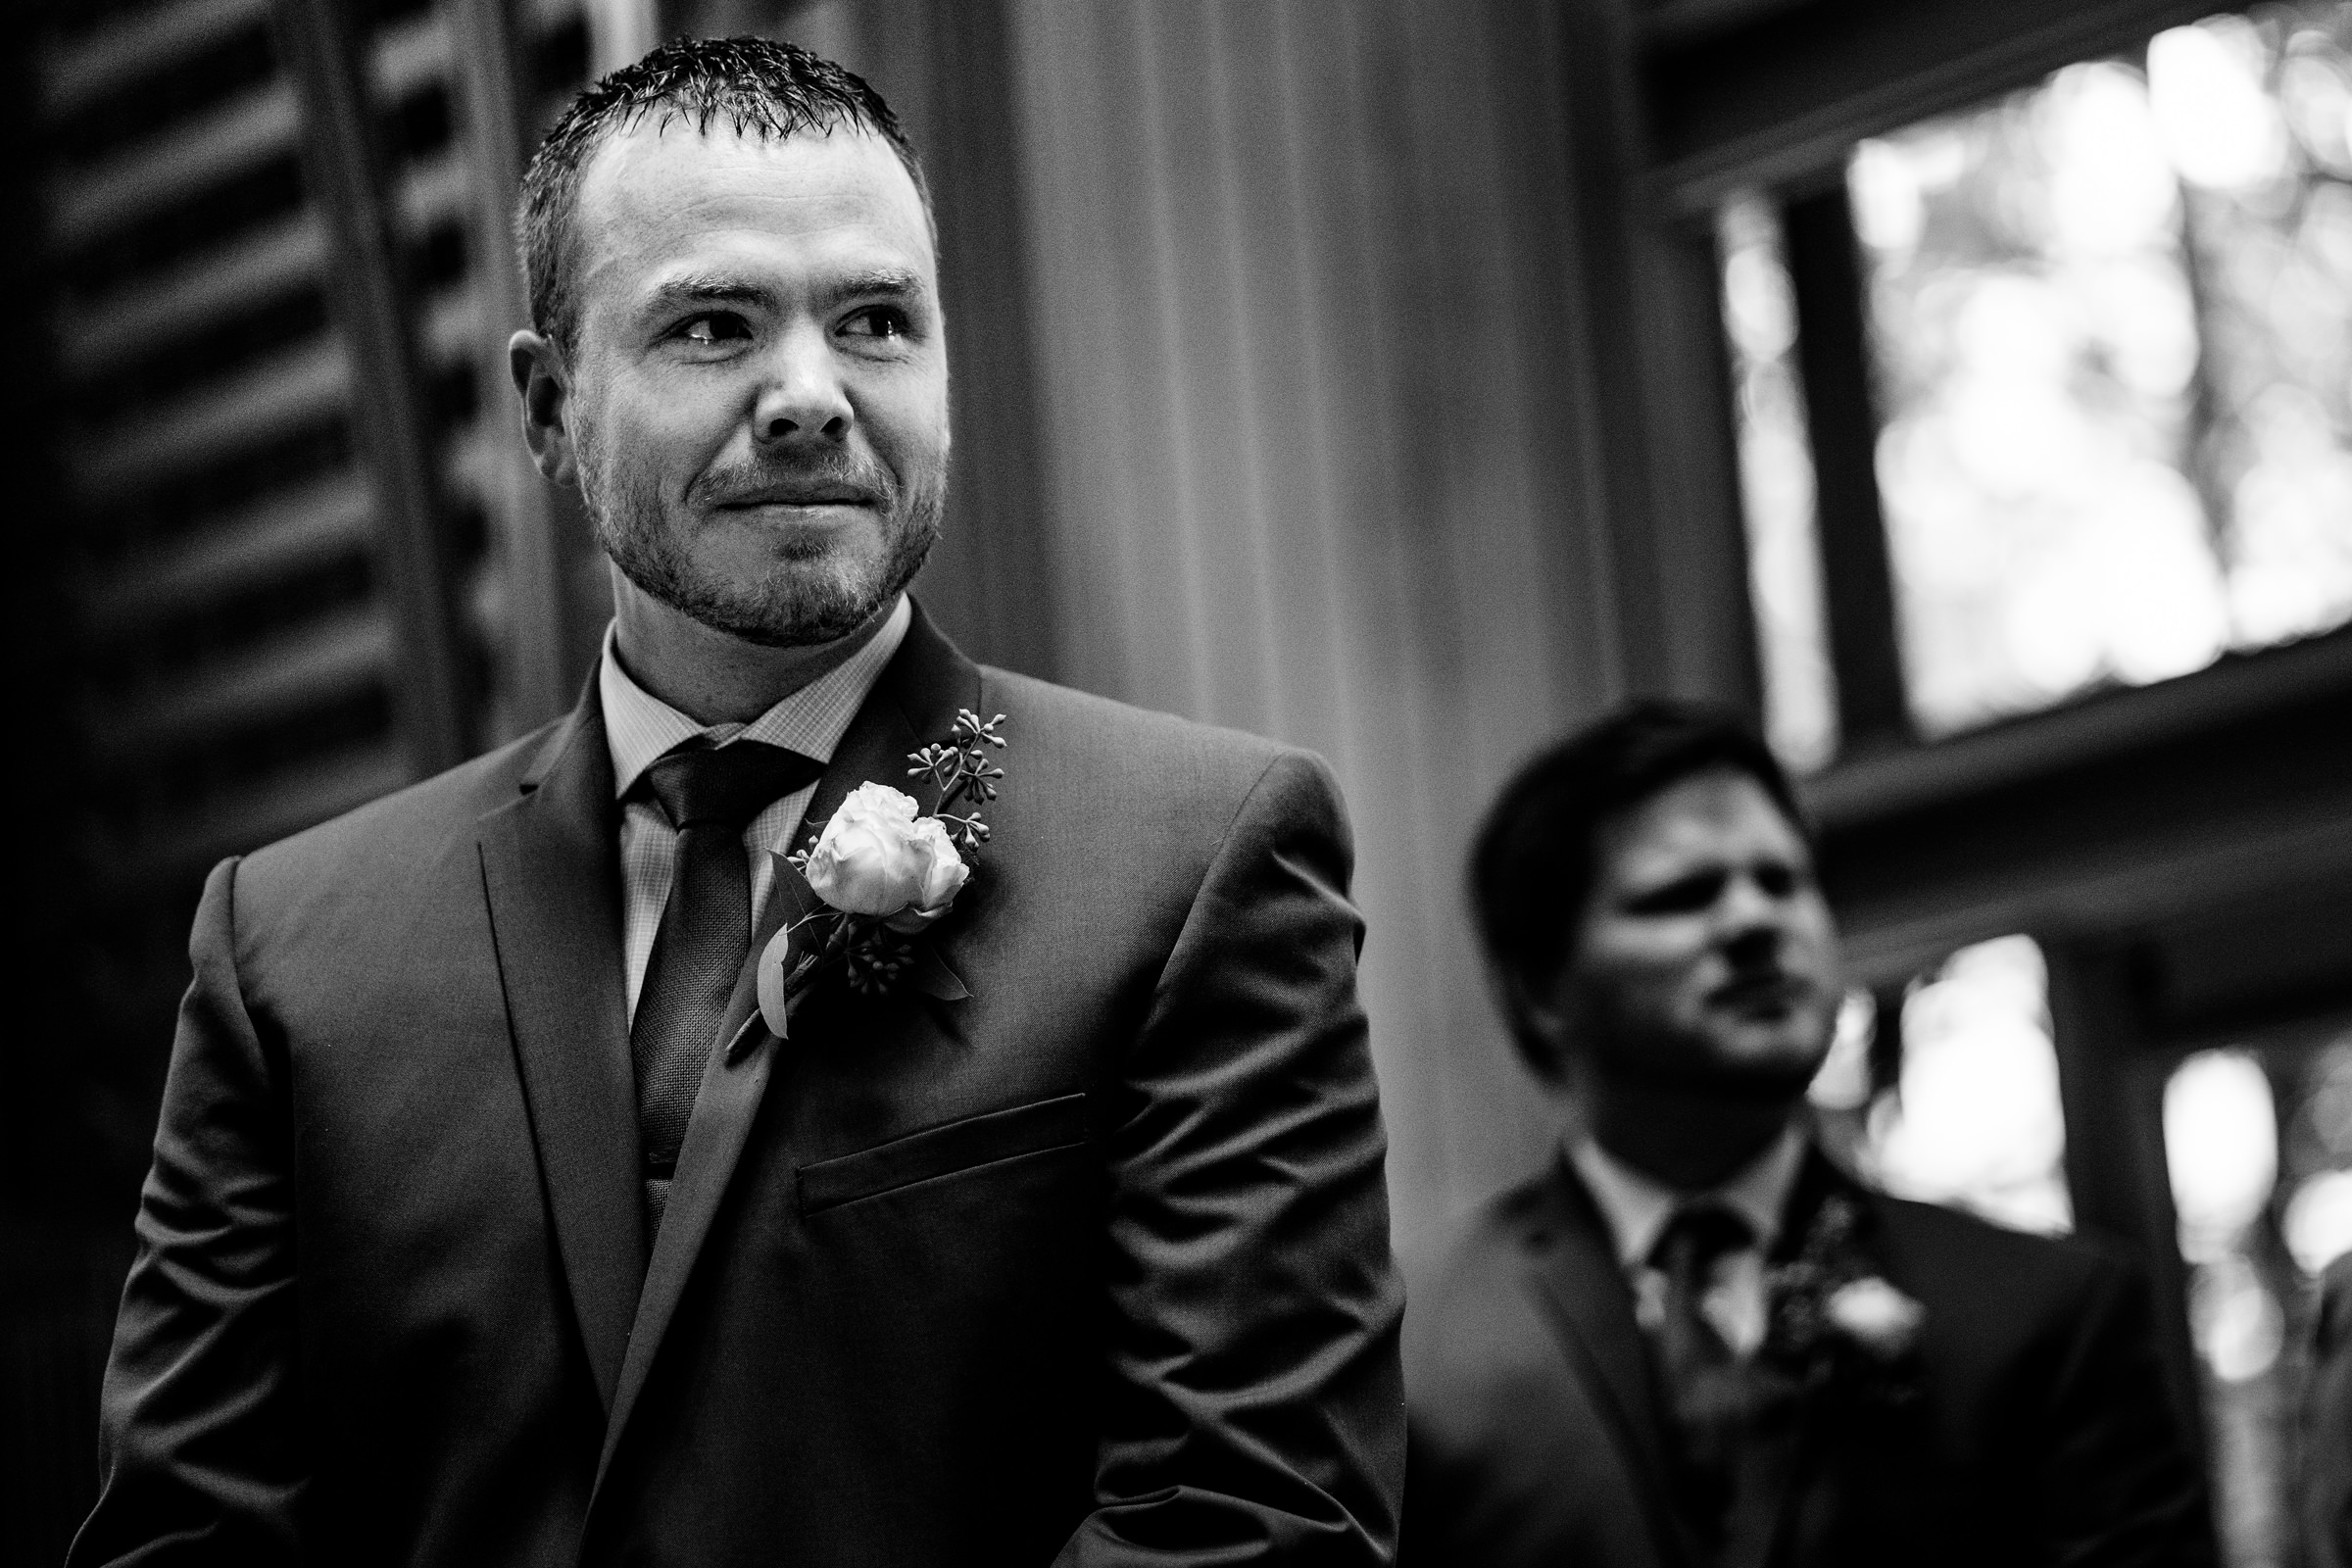 groom seeing the bride for the first time walking down the aisle-Arkansas photographer- photo by Vinson Images